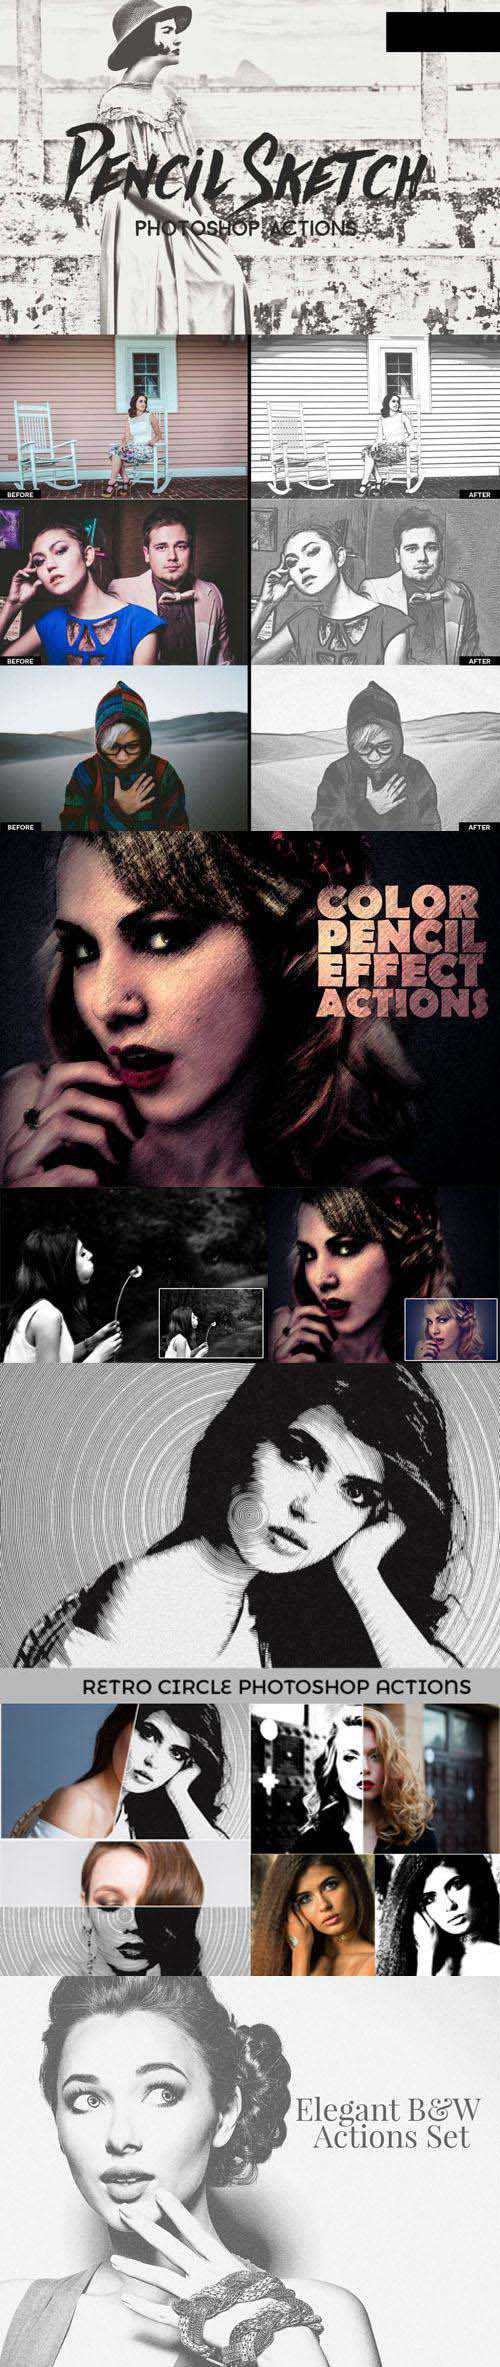 B/W & Pencil Sketch Photoshop Actions Collection